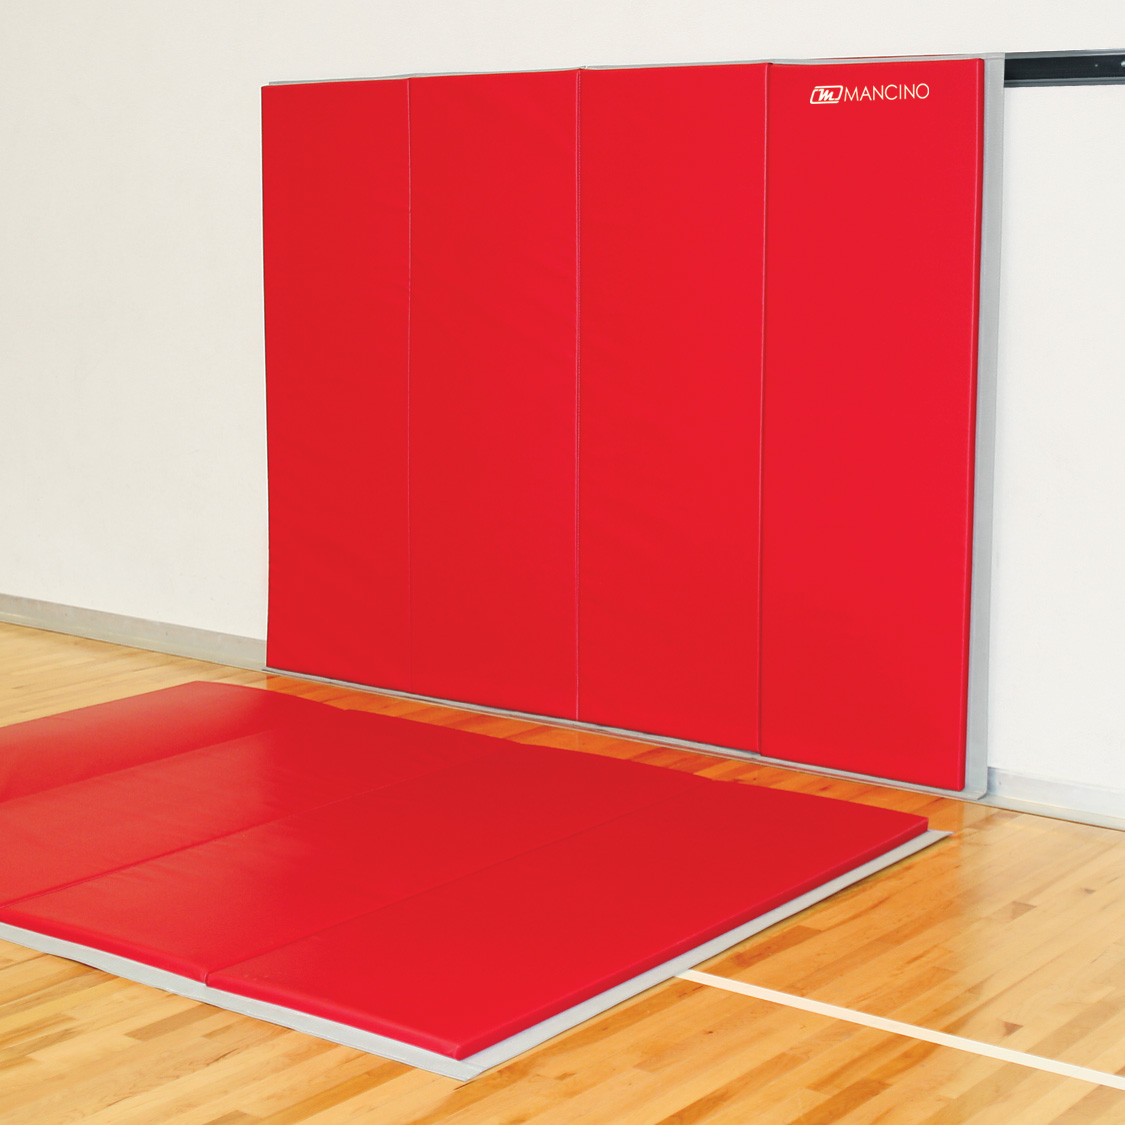 red removable wall padding floor mats